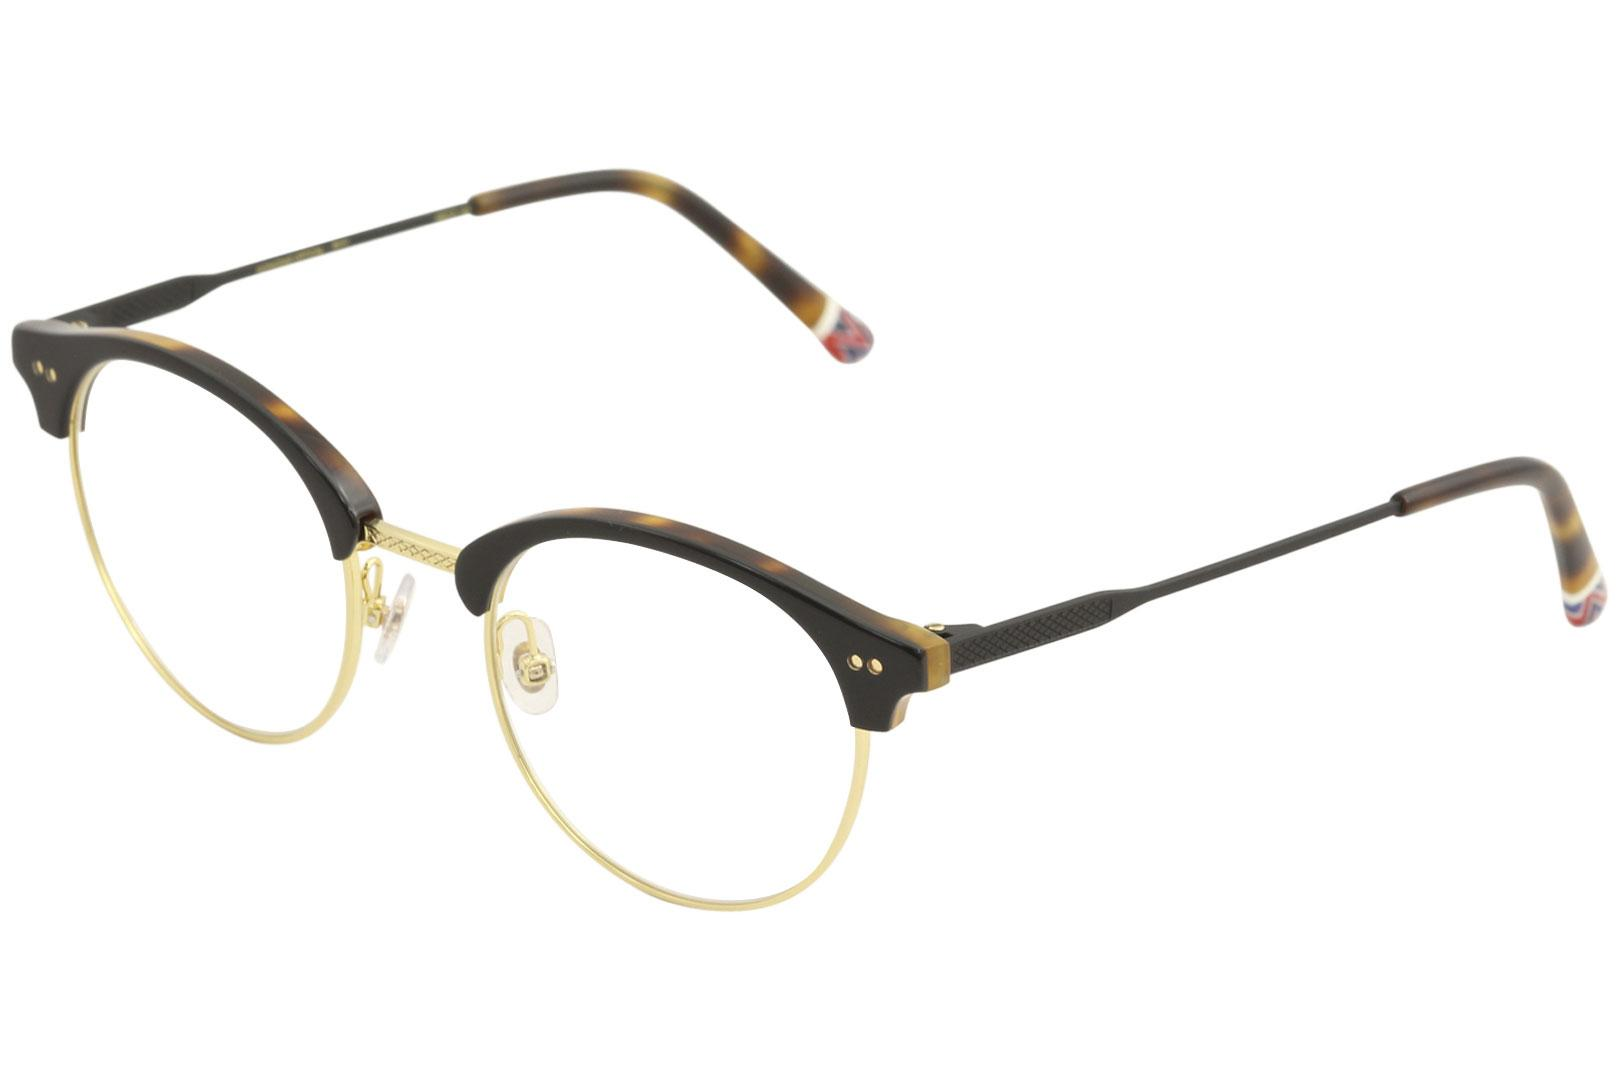 3a06224f3fe0 Etnia Barcelona Men's Eyeglasses Vintage Collection Hongdae Optical Frame